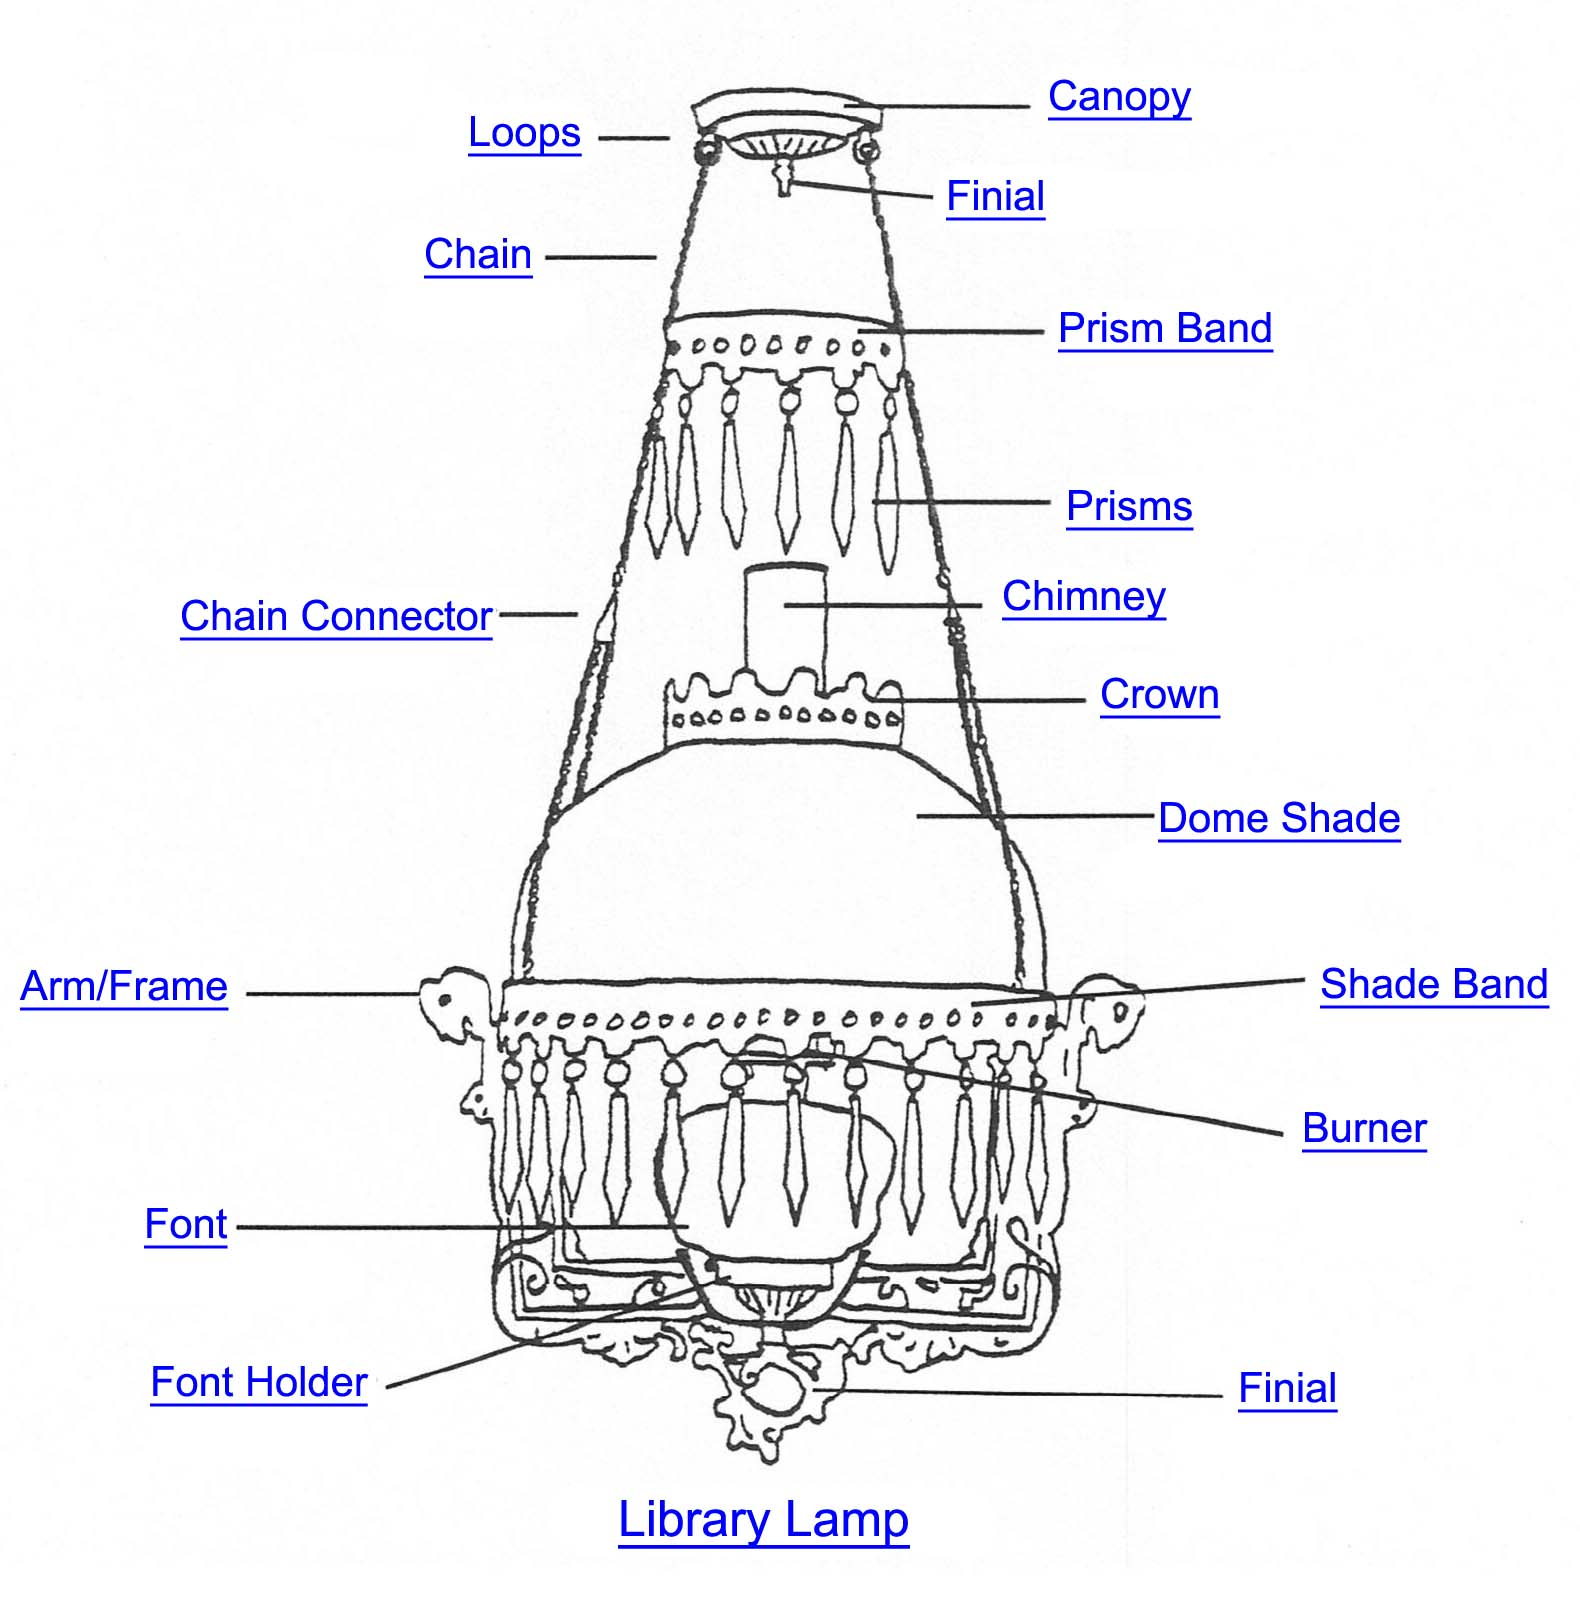 Library Lamp Part Index